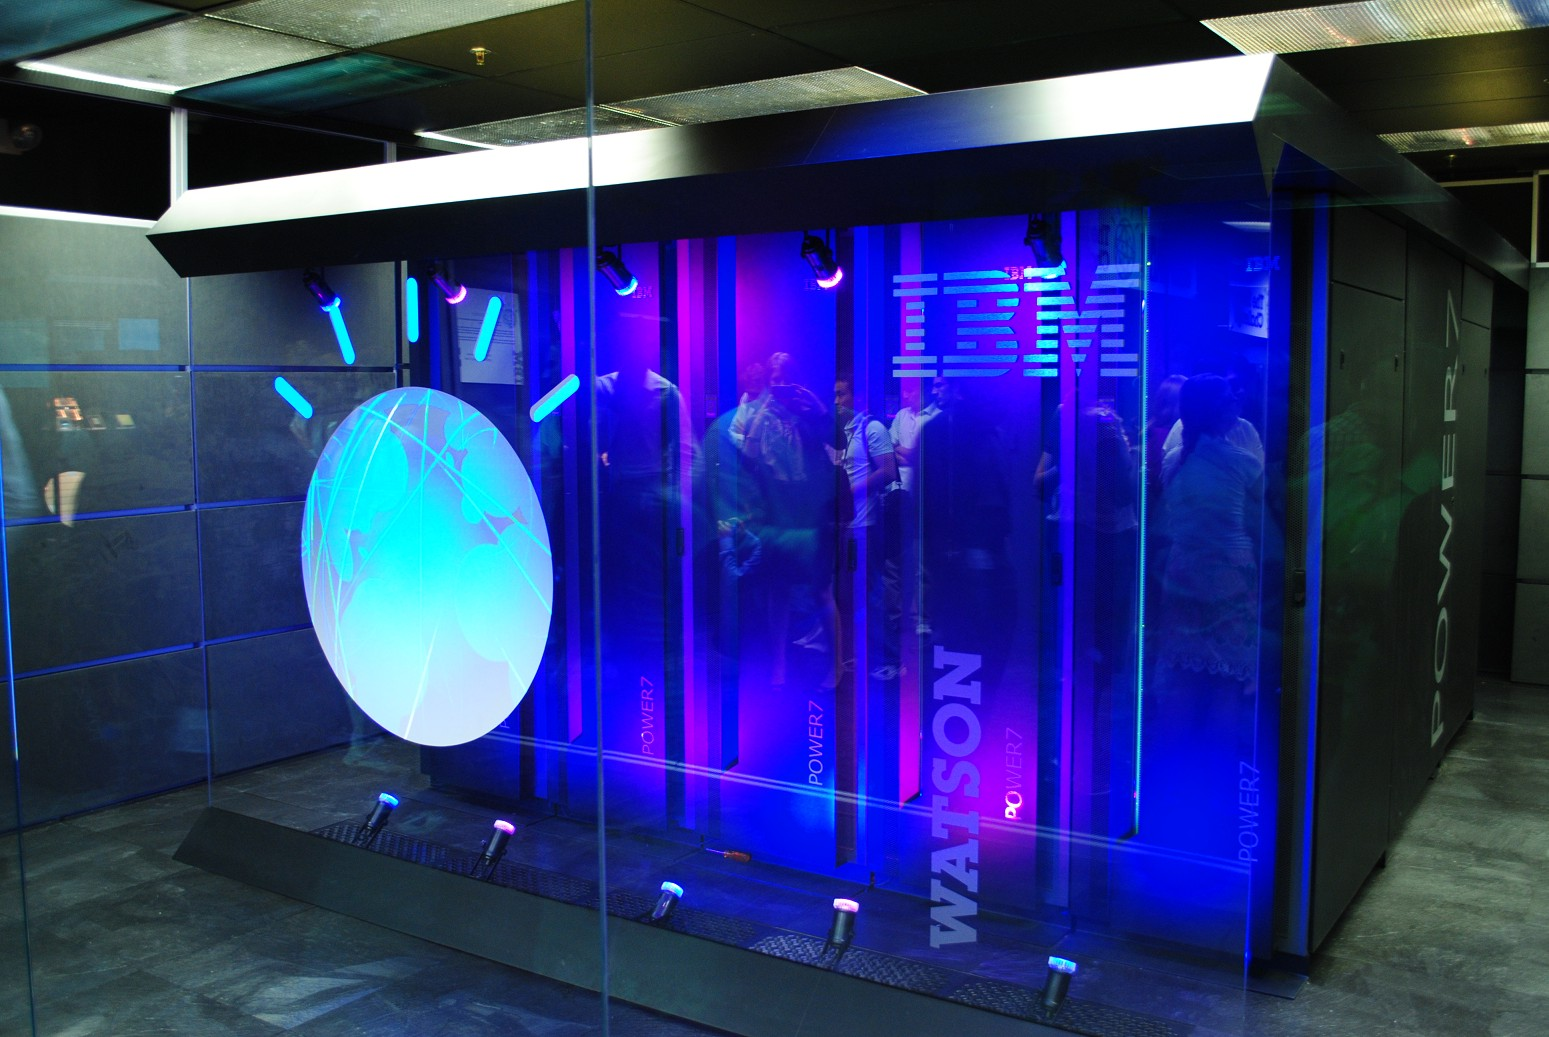 IBM Watson Supercomputer brains for free music chatbot